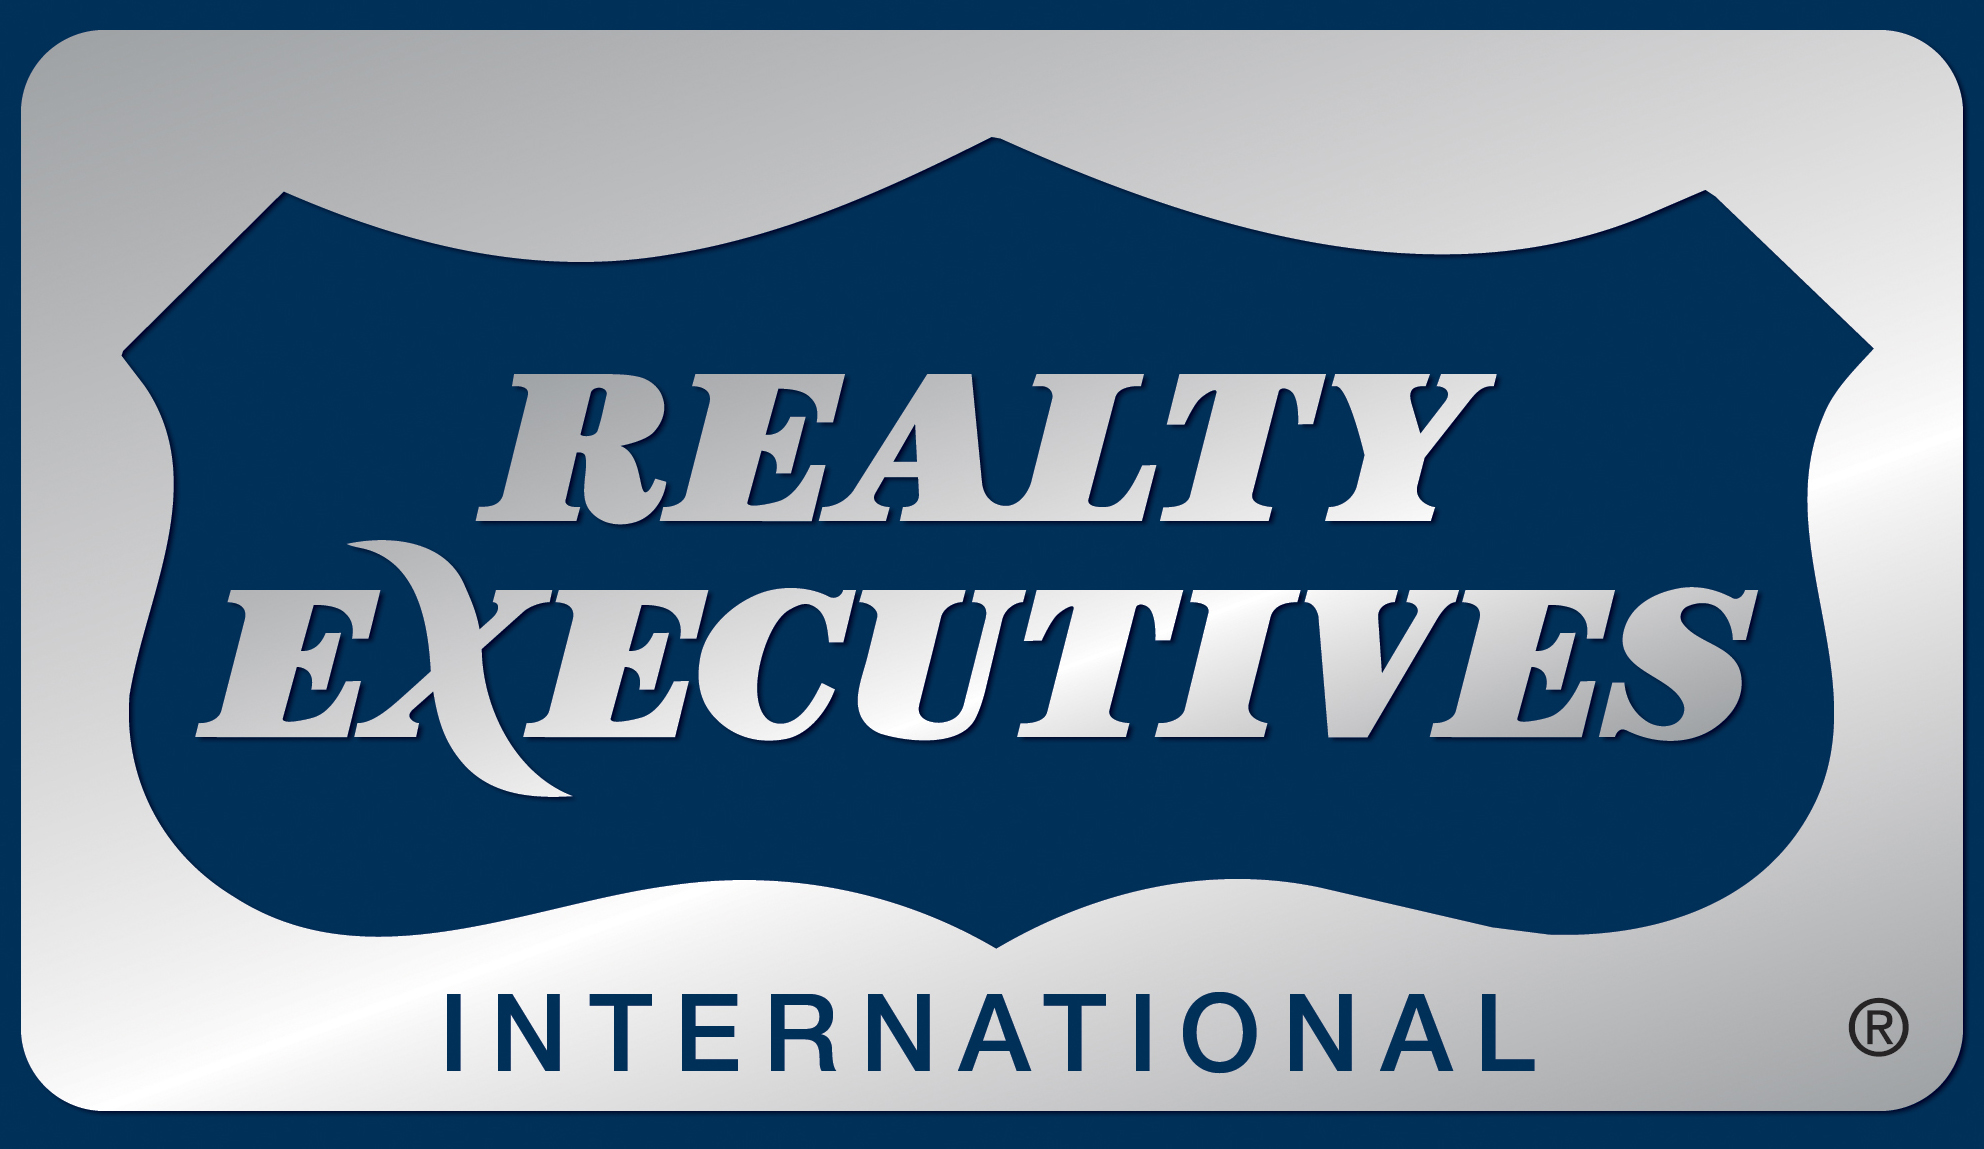 Realty Executives Premier Properties